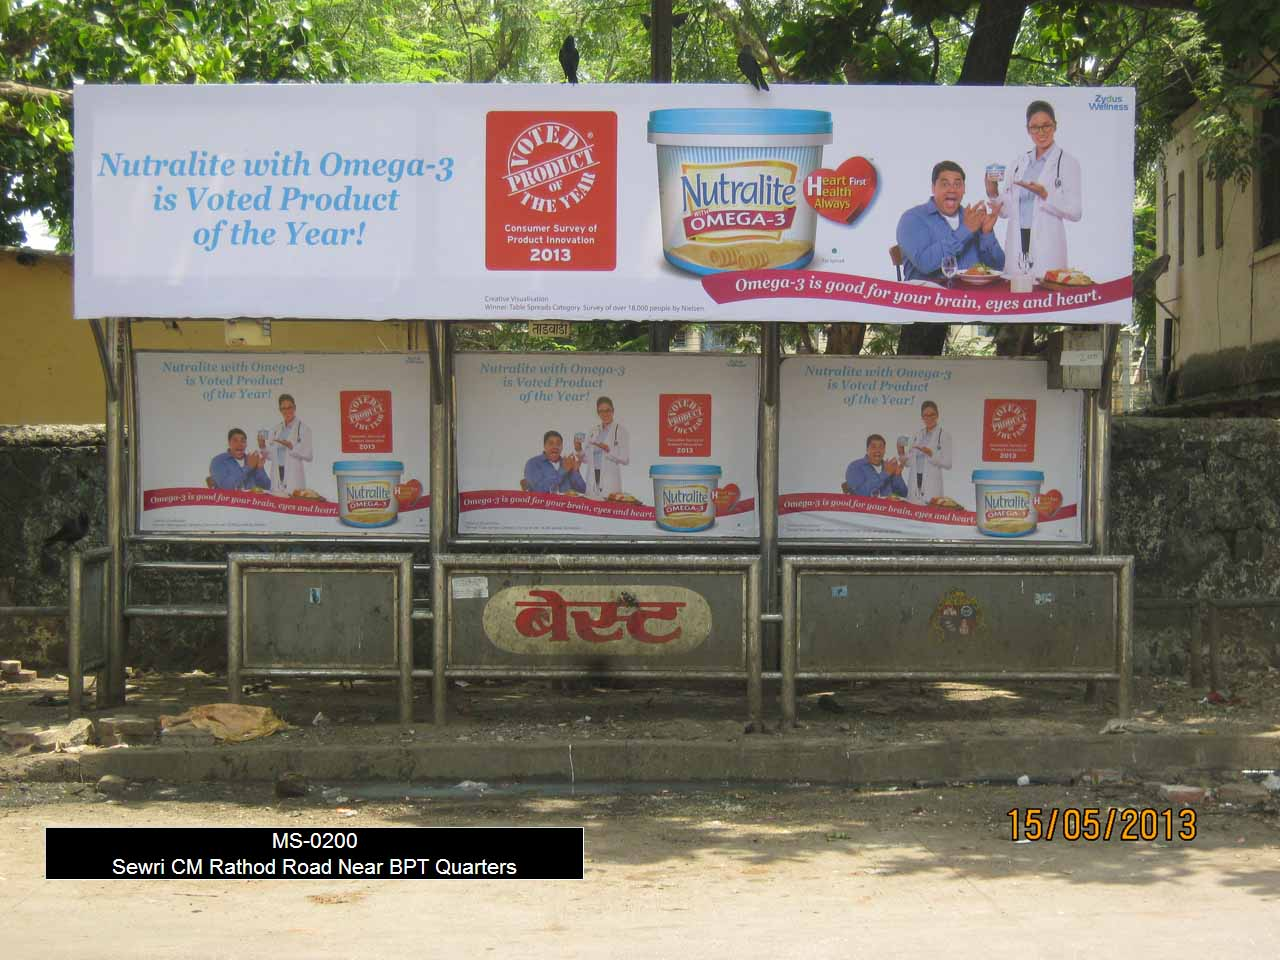 Outdoor Advertising in Bus Shelter Sewri